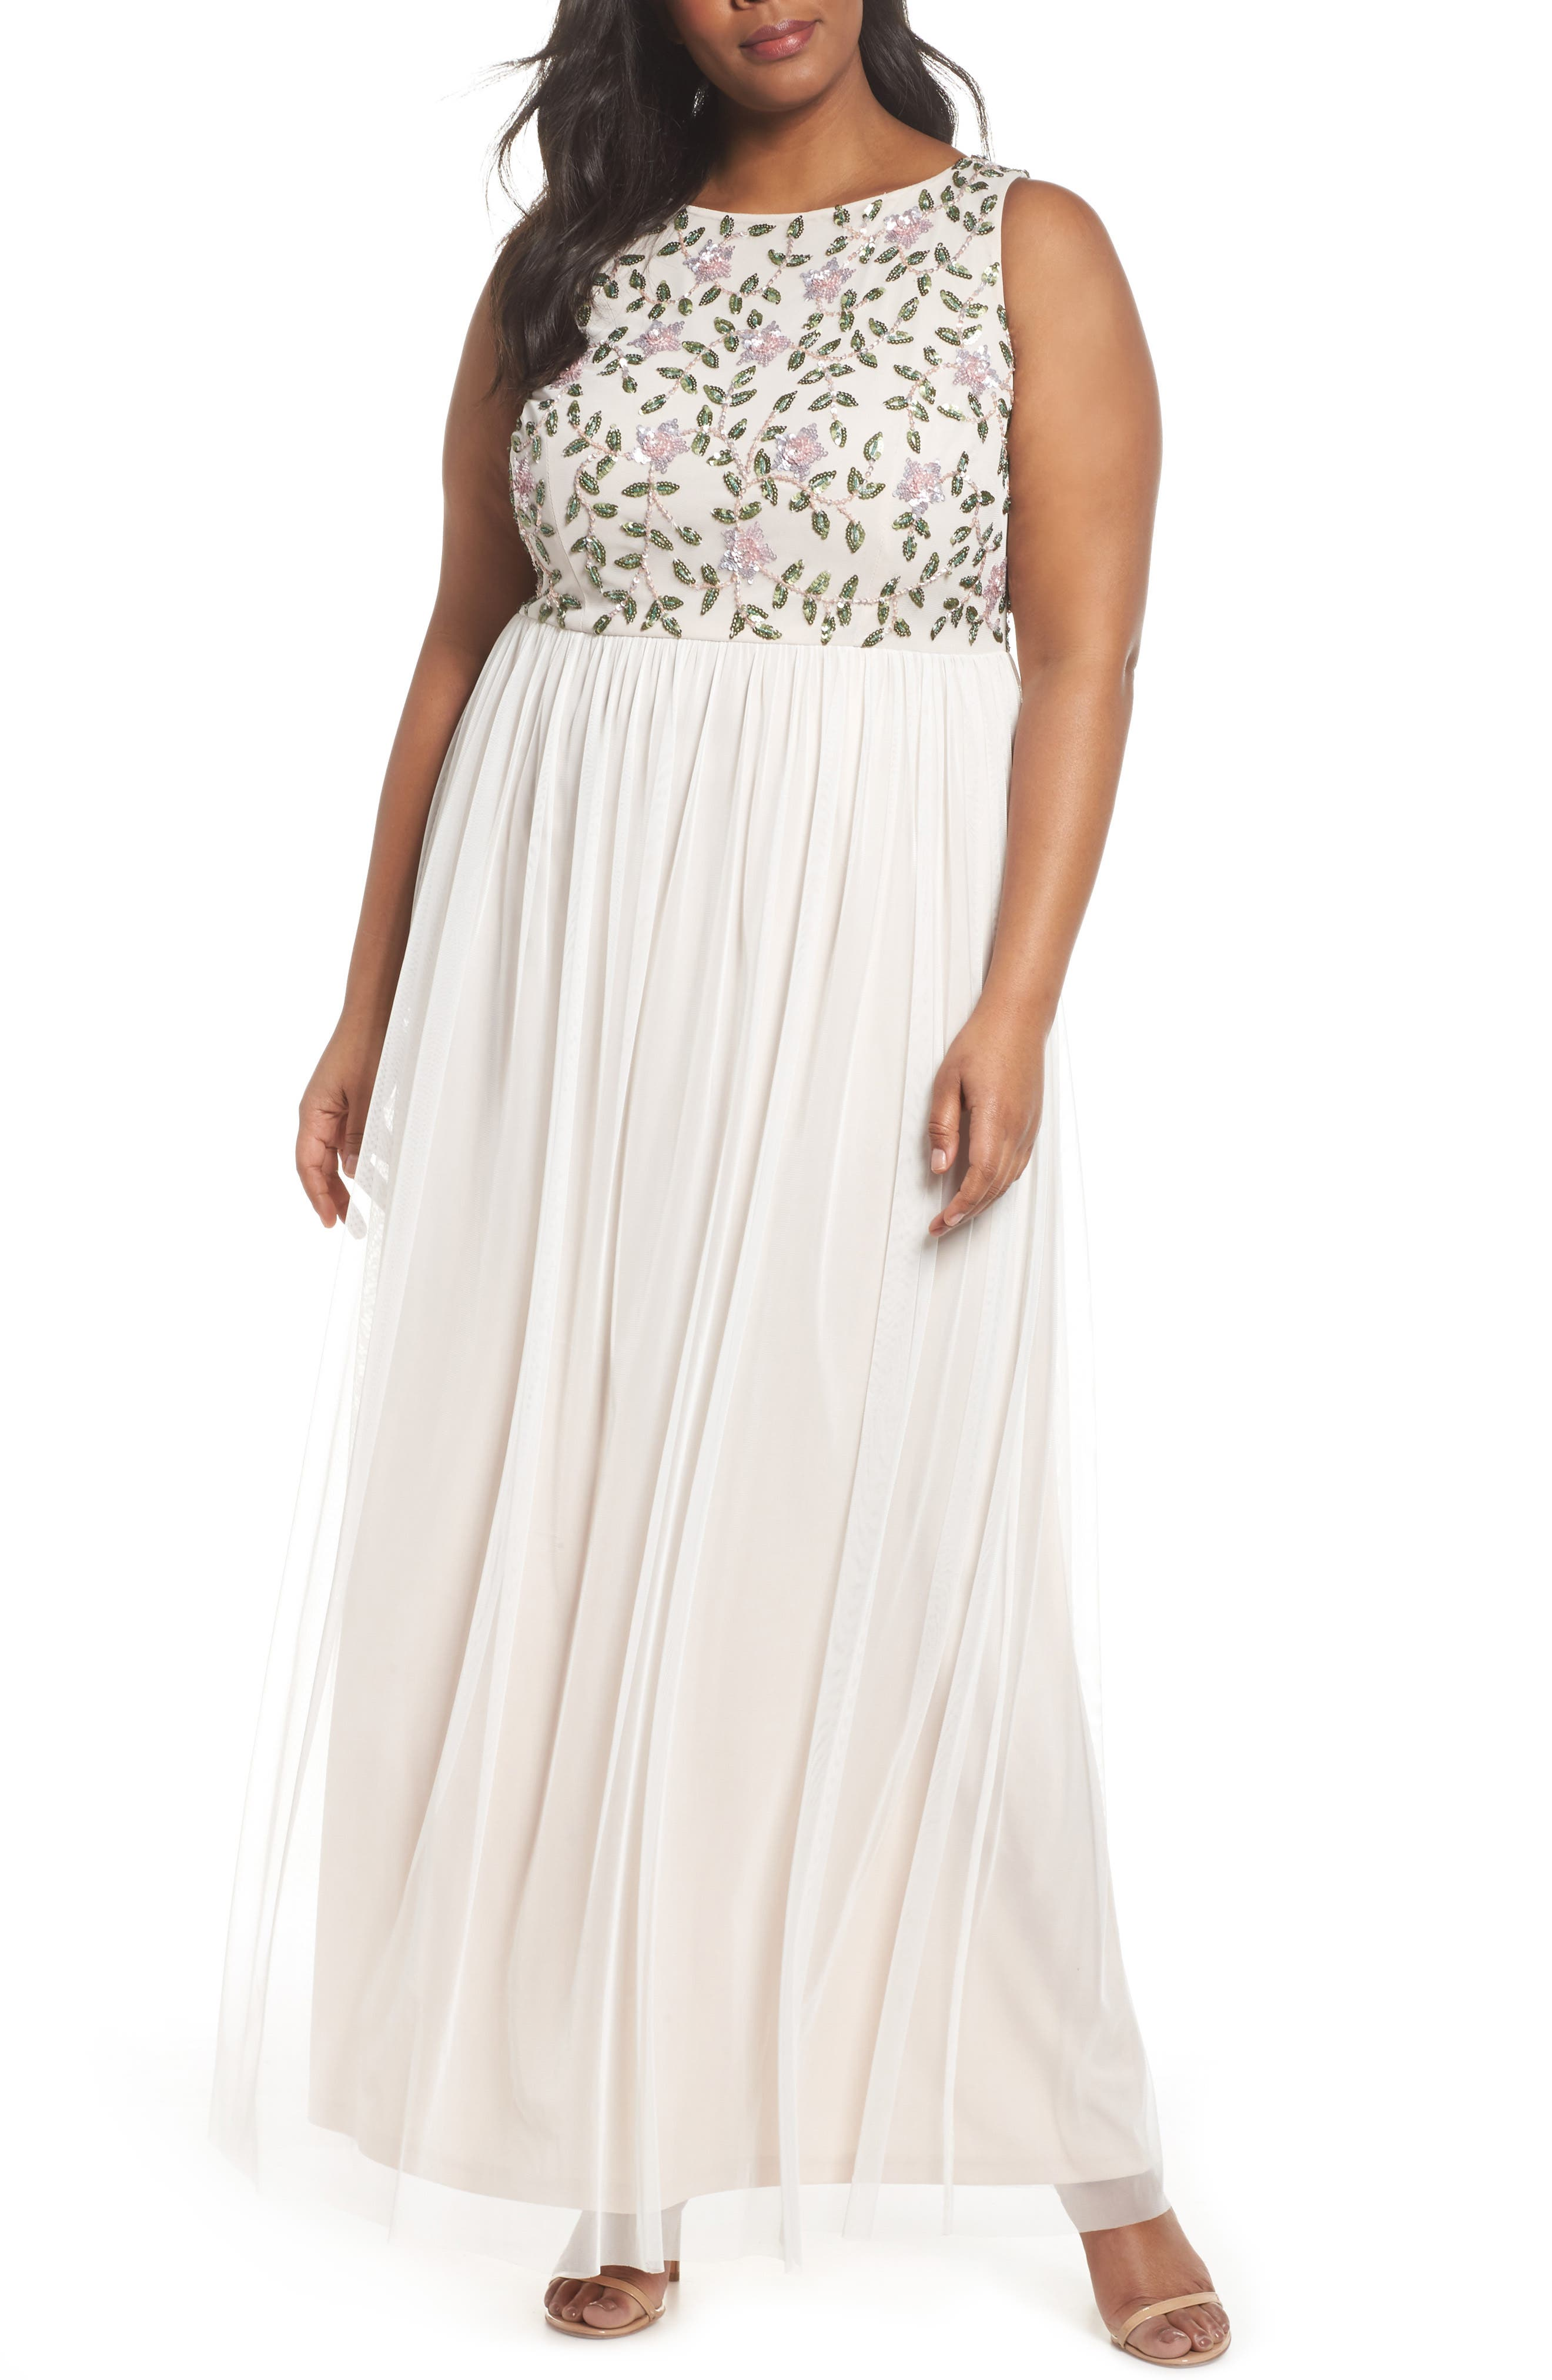 Adrianna Papell Floral Sequin Bodice Gown (Plus Size)